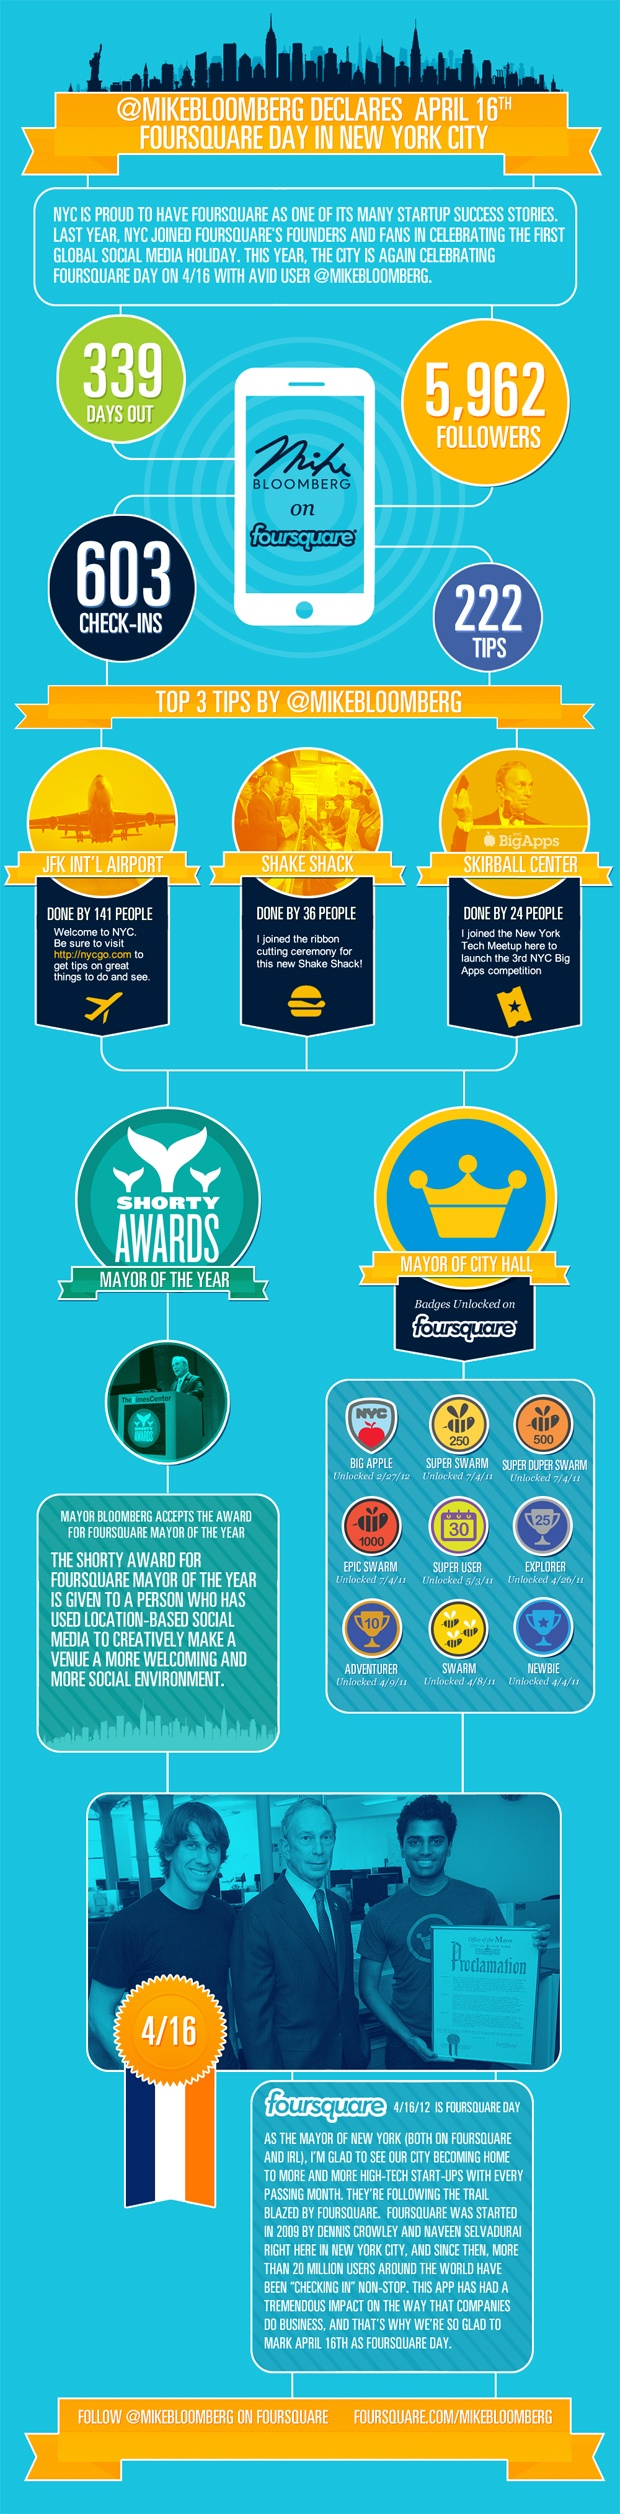 Mayor of New York Foursquare Day Infograph - Mike Bloomberg Declares 4/16 Foursquare Day